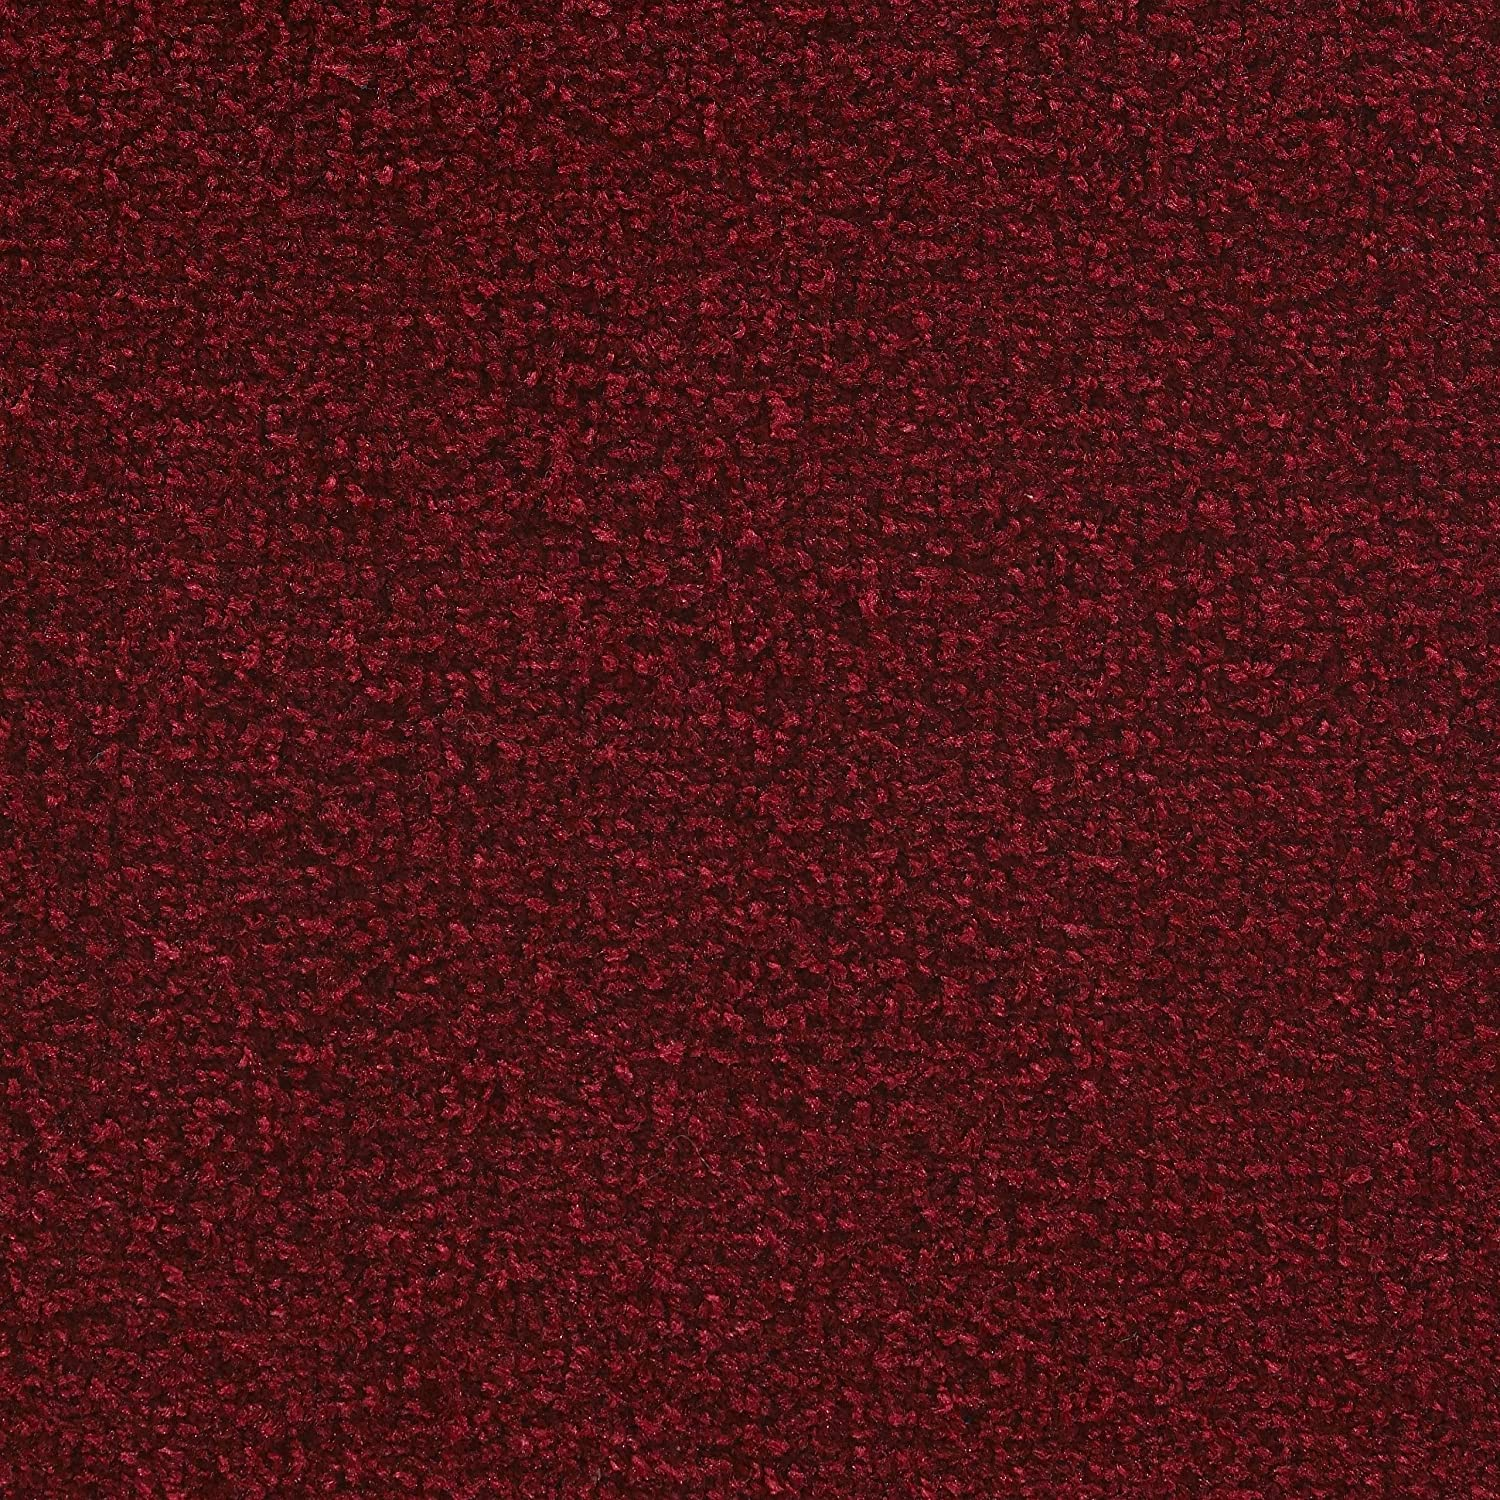 Andersen 105 Cranberry Nylon TriGrip Mat with SBR Rubber Backing, 8-Feet Length X 3-Feet Width, for Interior